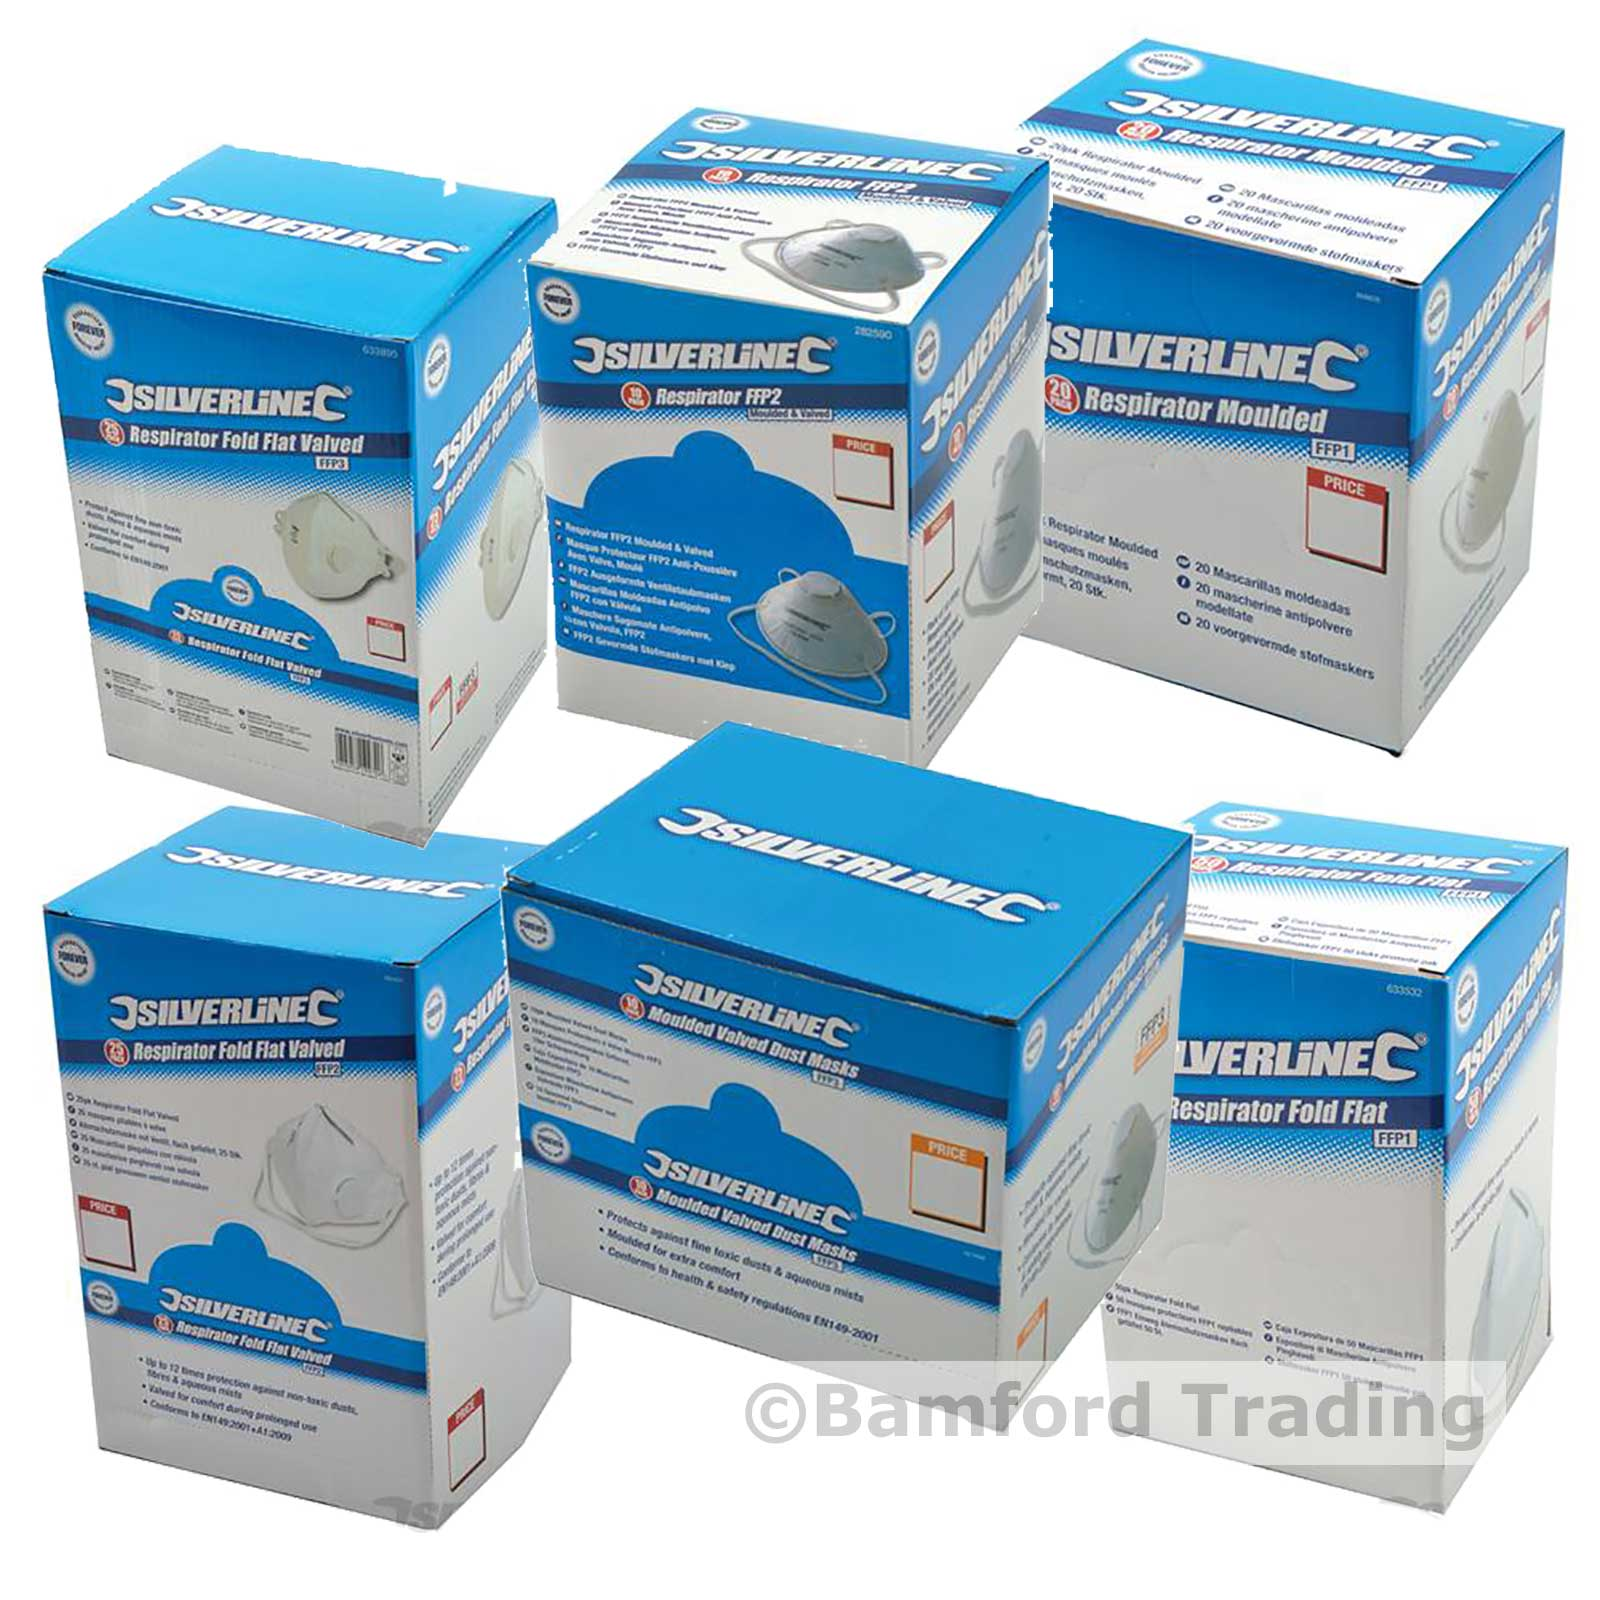 Silverline Disposable Dust Masks | Silverline Disposable Dust Masks ...